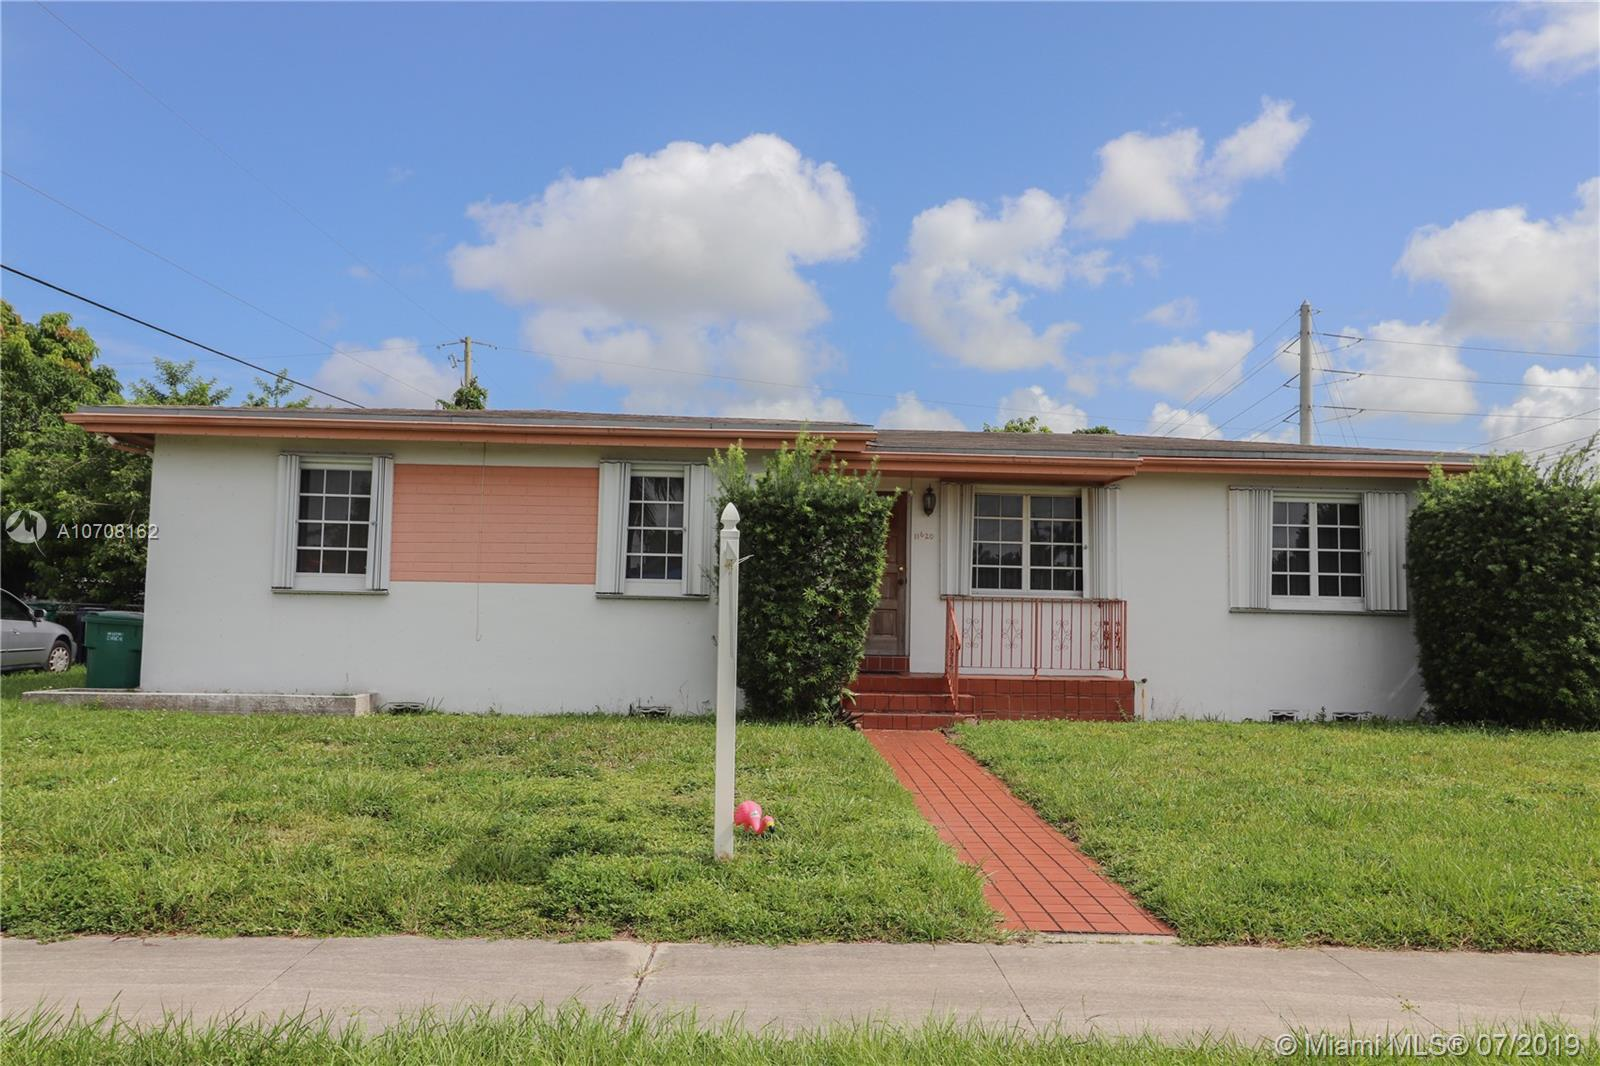 11620 SW 139th Ter, Kendall in Miami-dade County County, FL 33176 Home for Sale